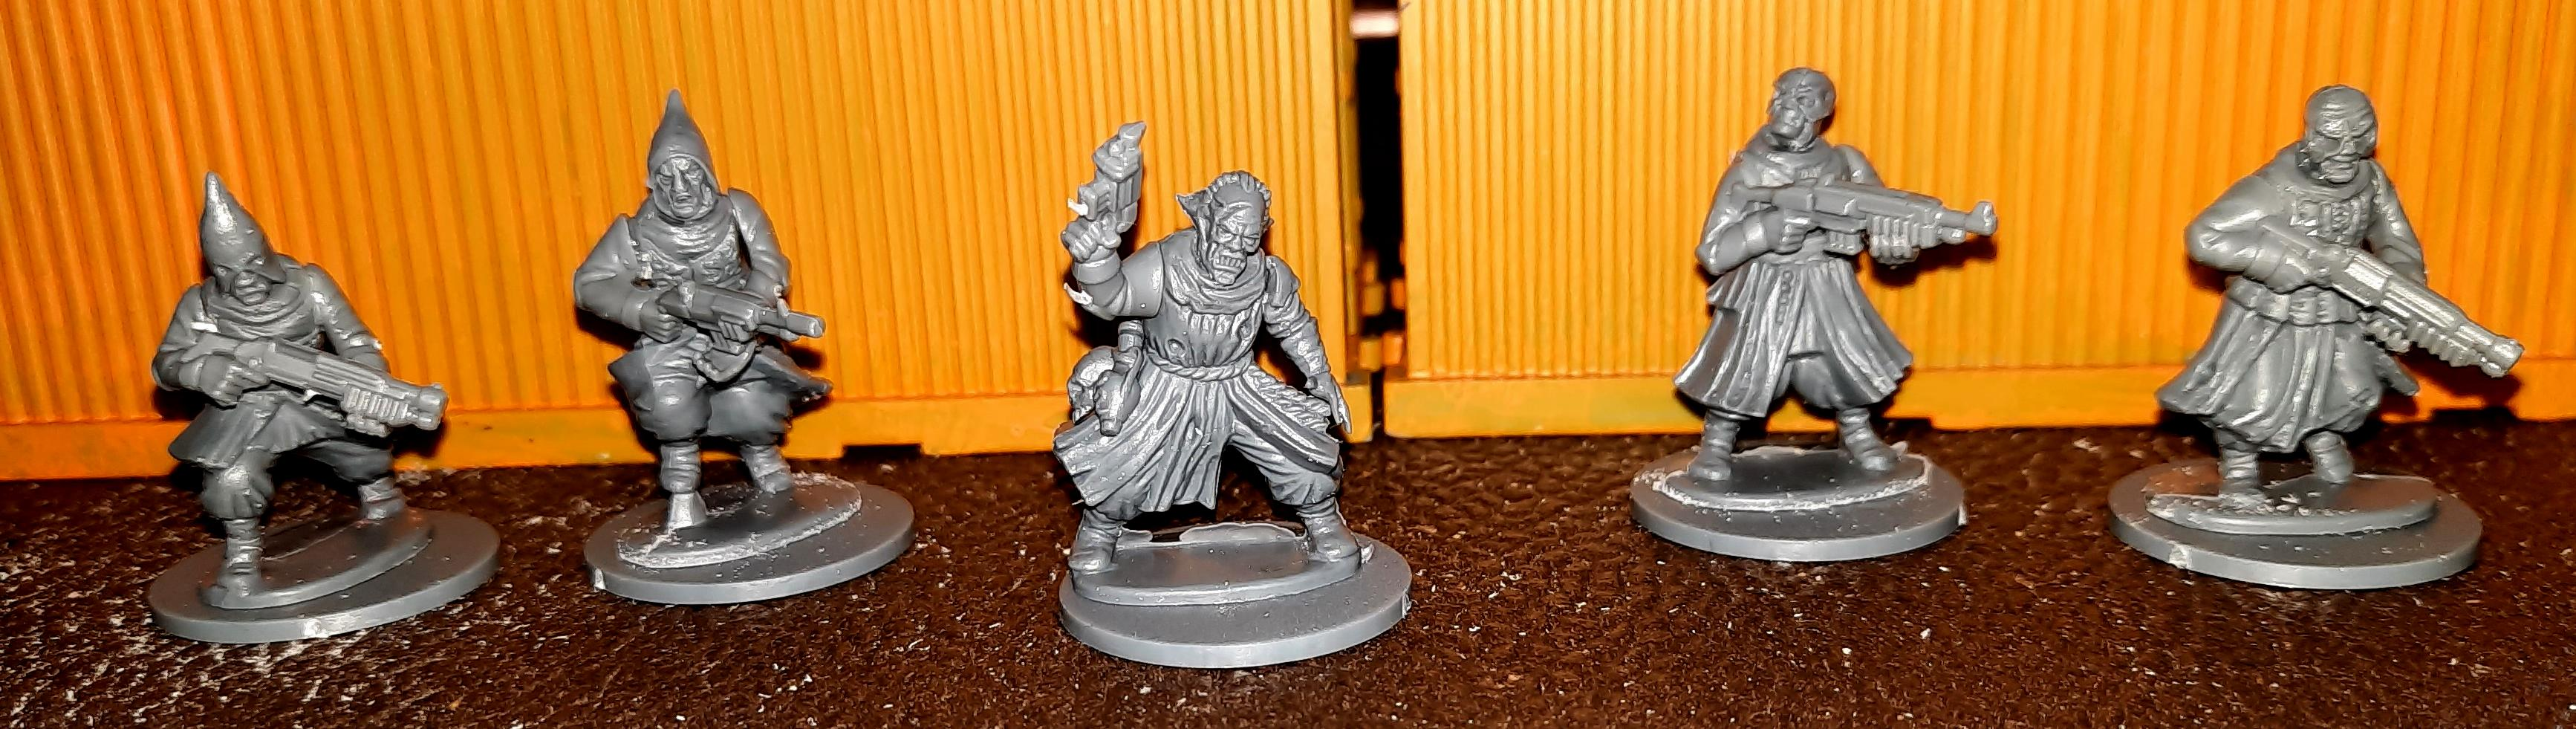 Crew, Cultists, Frostgrave, Stargrave